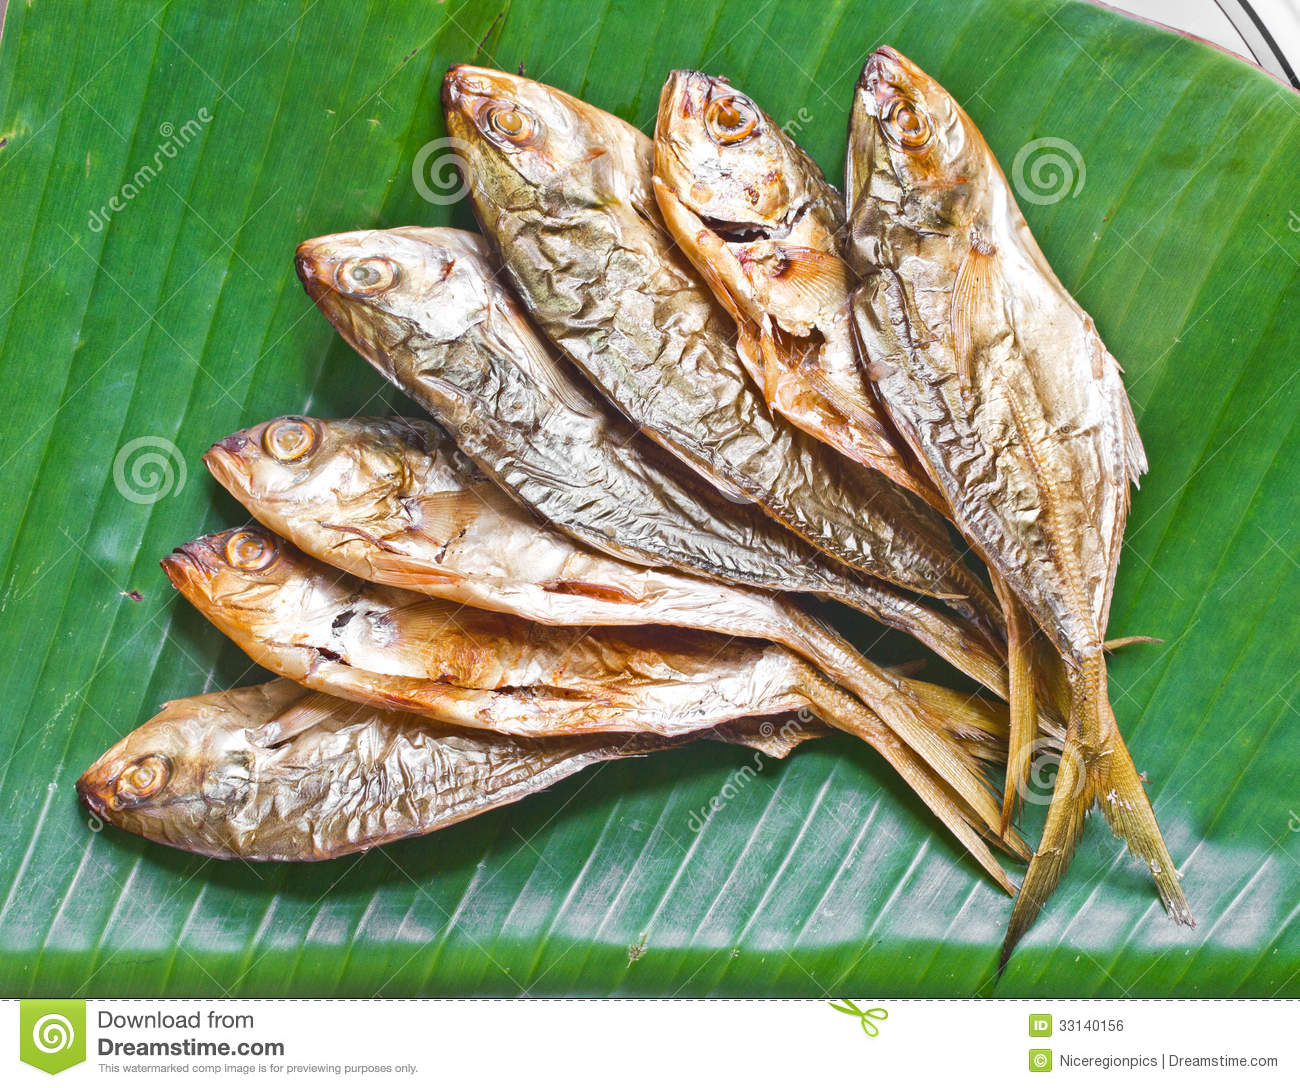 Grilled Fish On Banana Leaf Food. Royalty Free Stock Image - Image ...